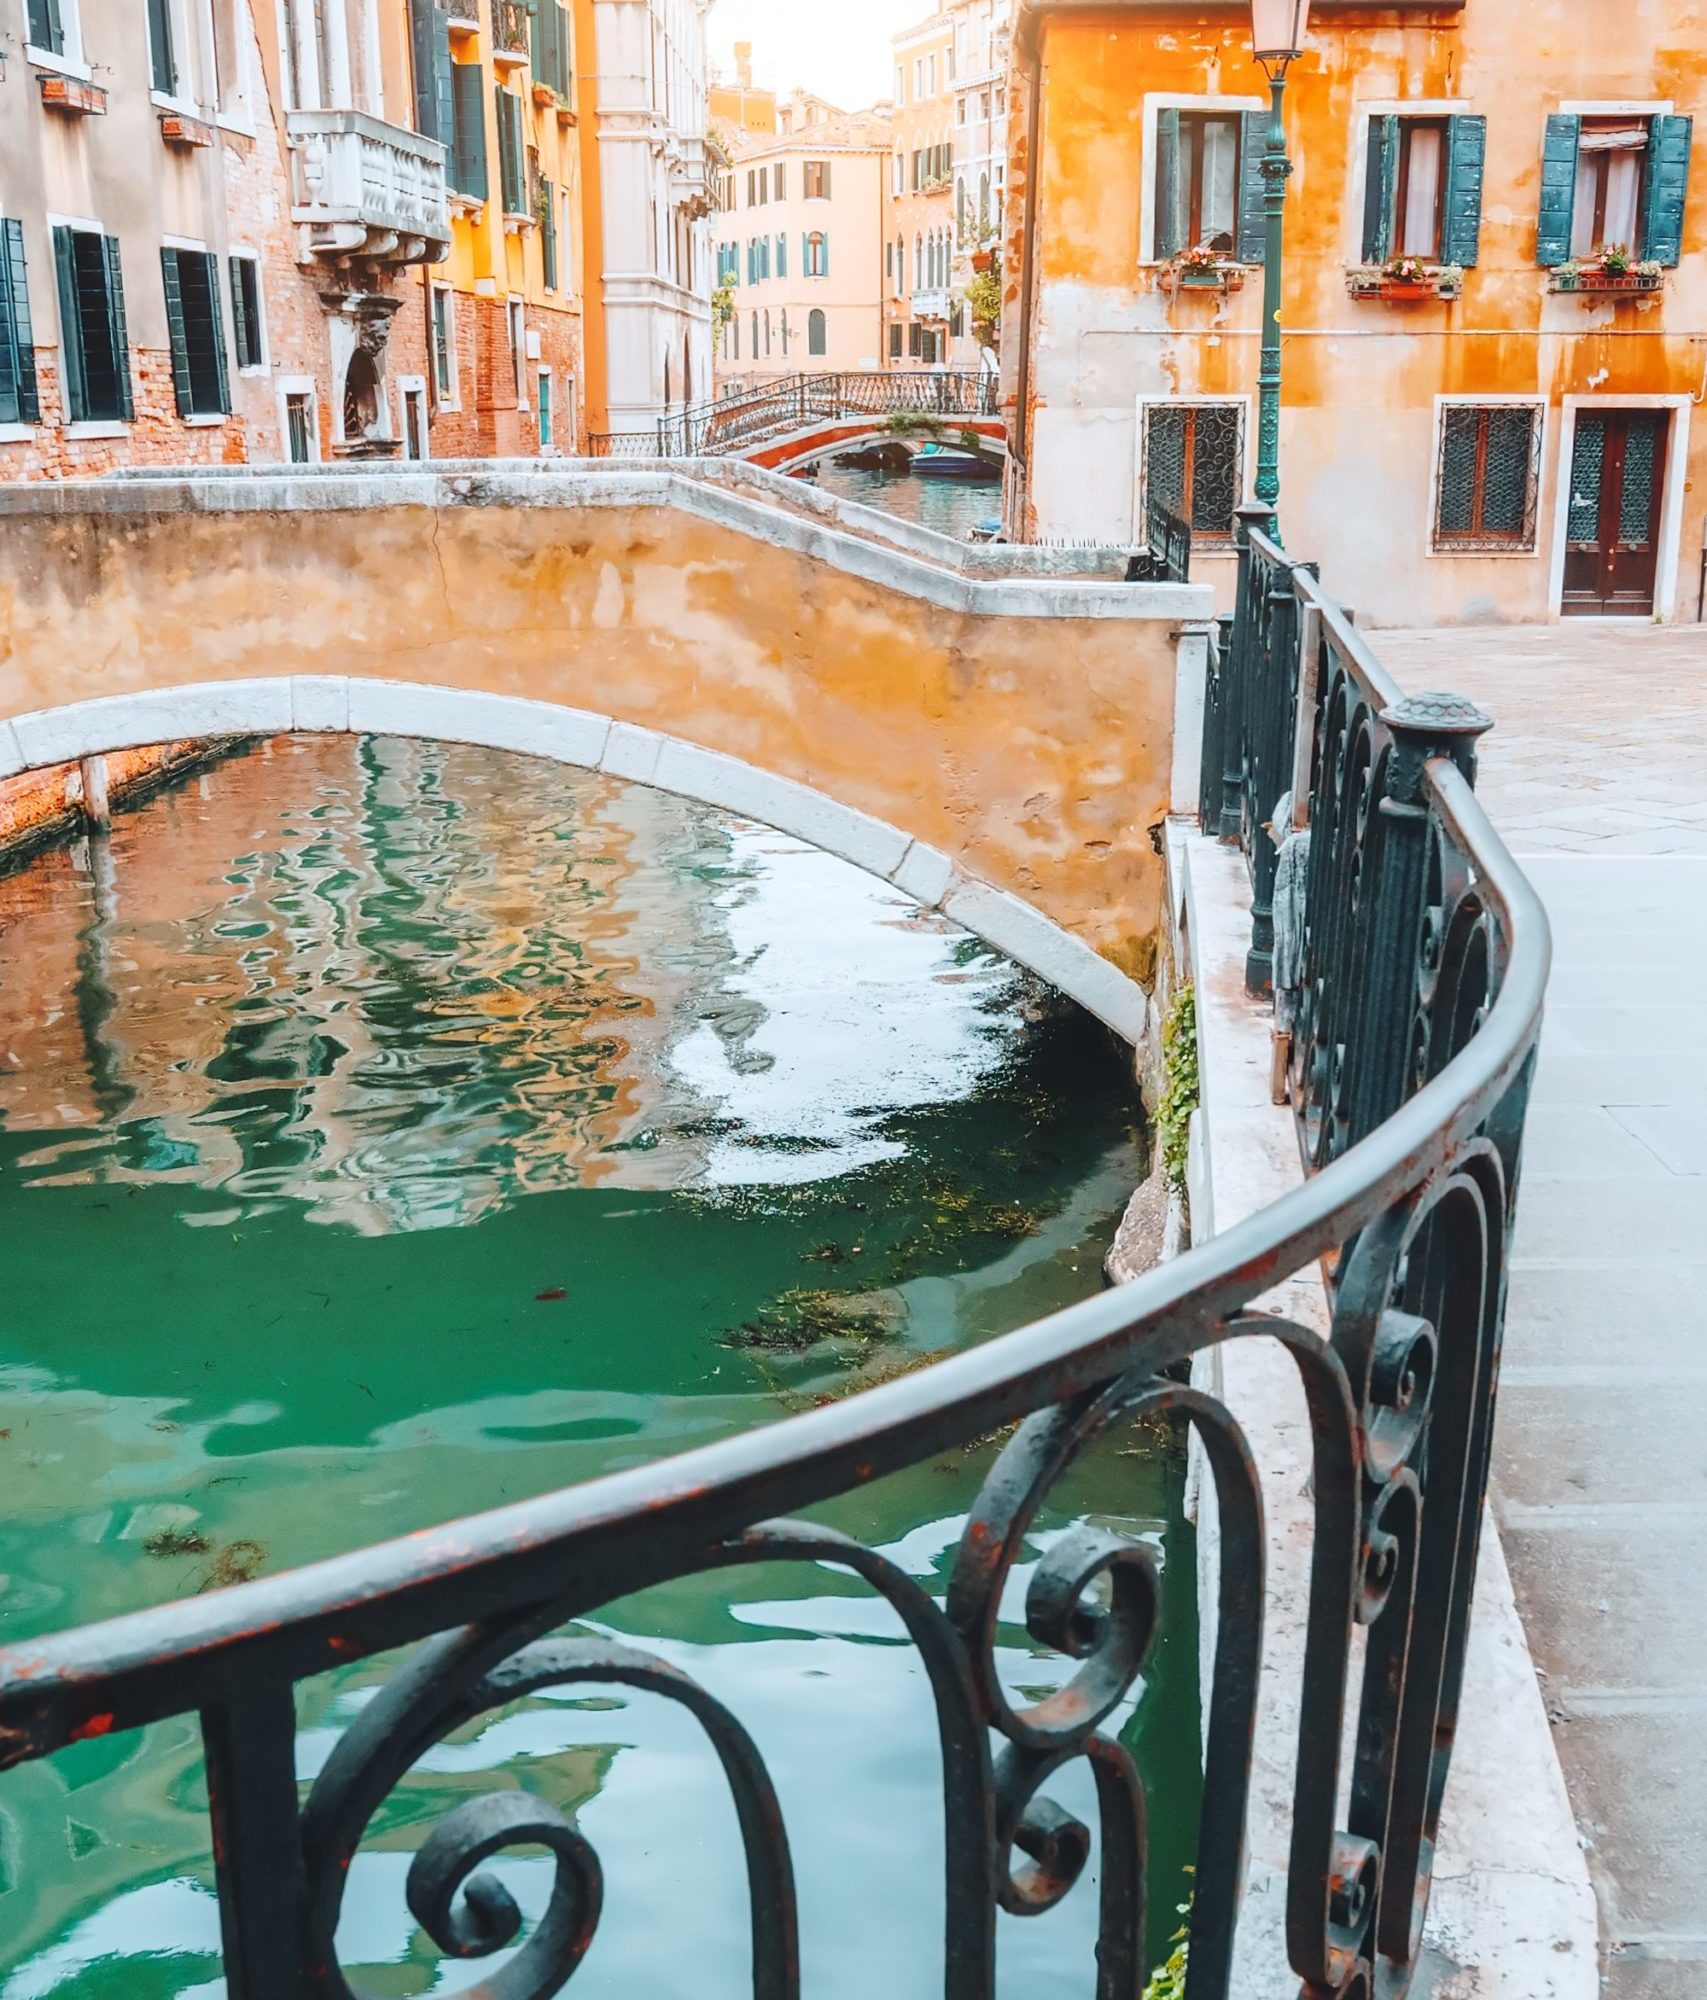 scenic-canal-with-bridge-and-colorful-buildings-in-FVSFK7H